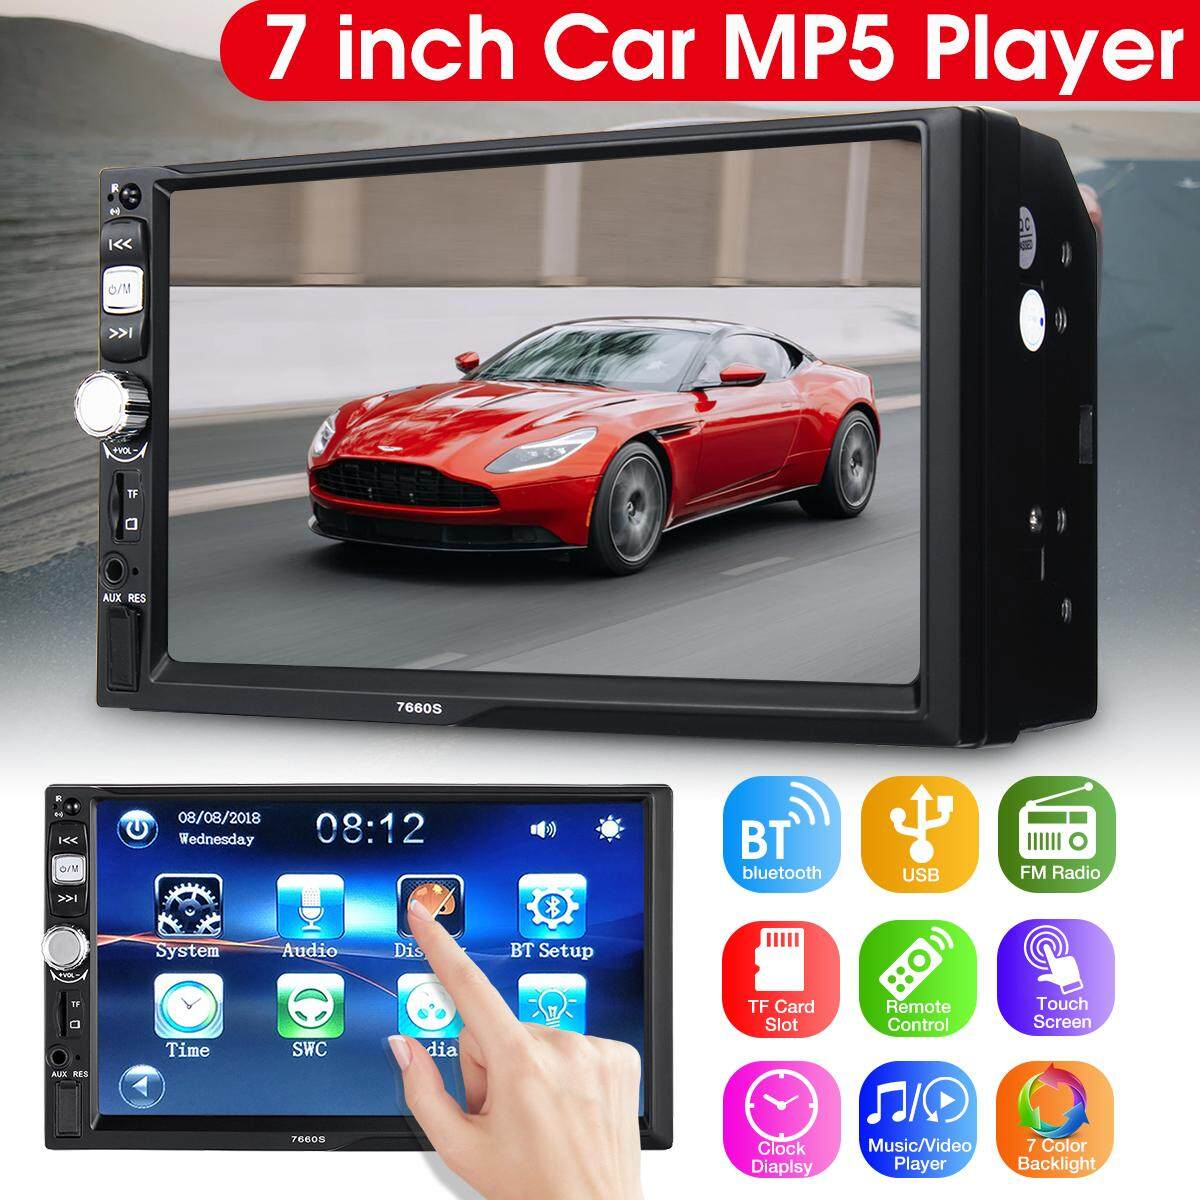 7 12v Hd Bluetooth Stereo Car Radio Mp5 Player 2 Din Head Tft Screen Gps By Motorup.